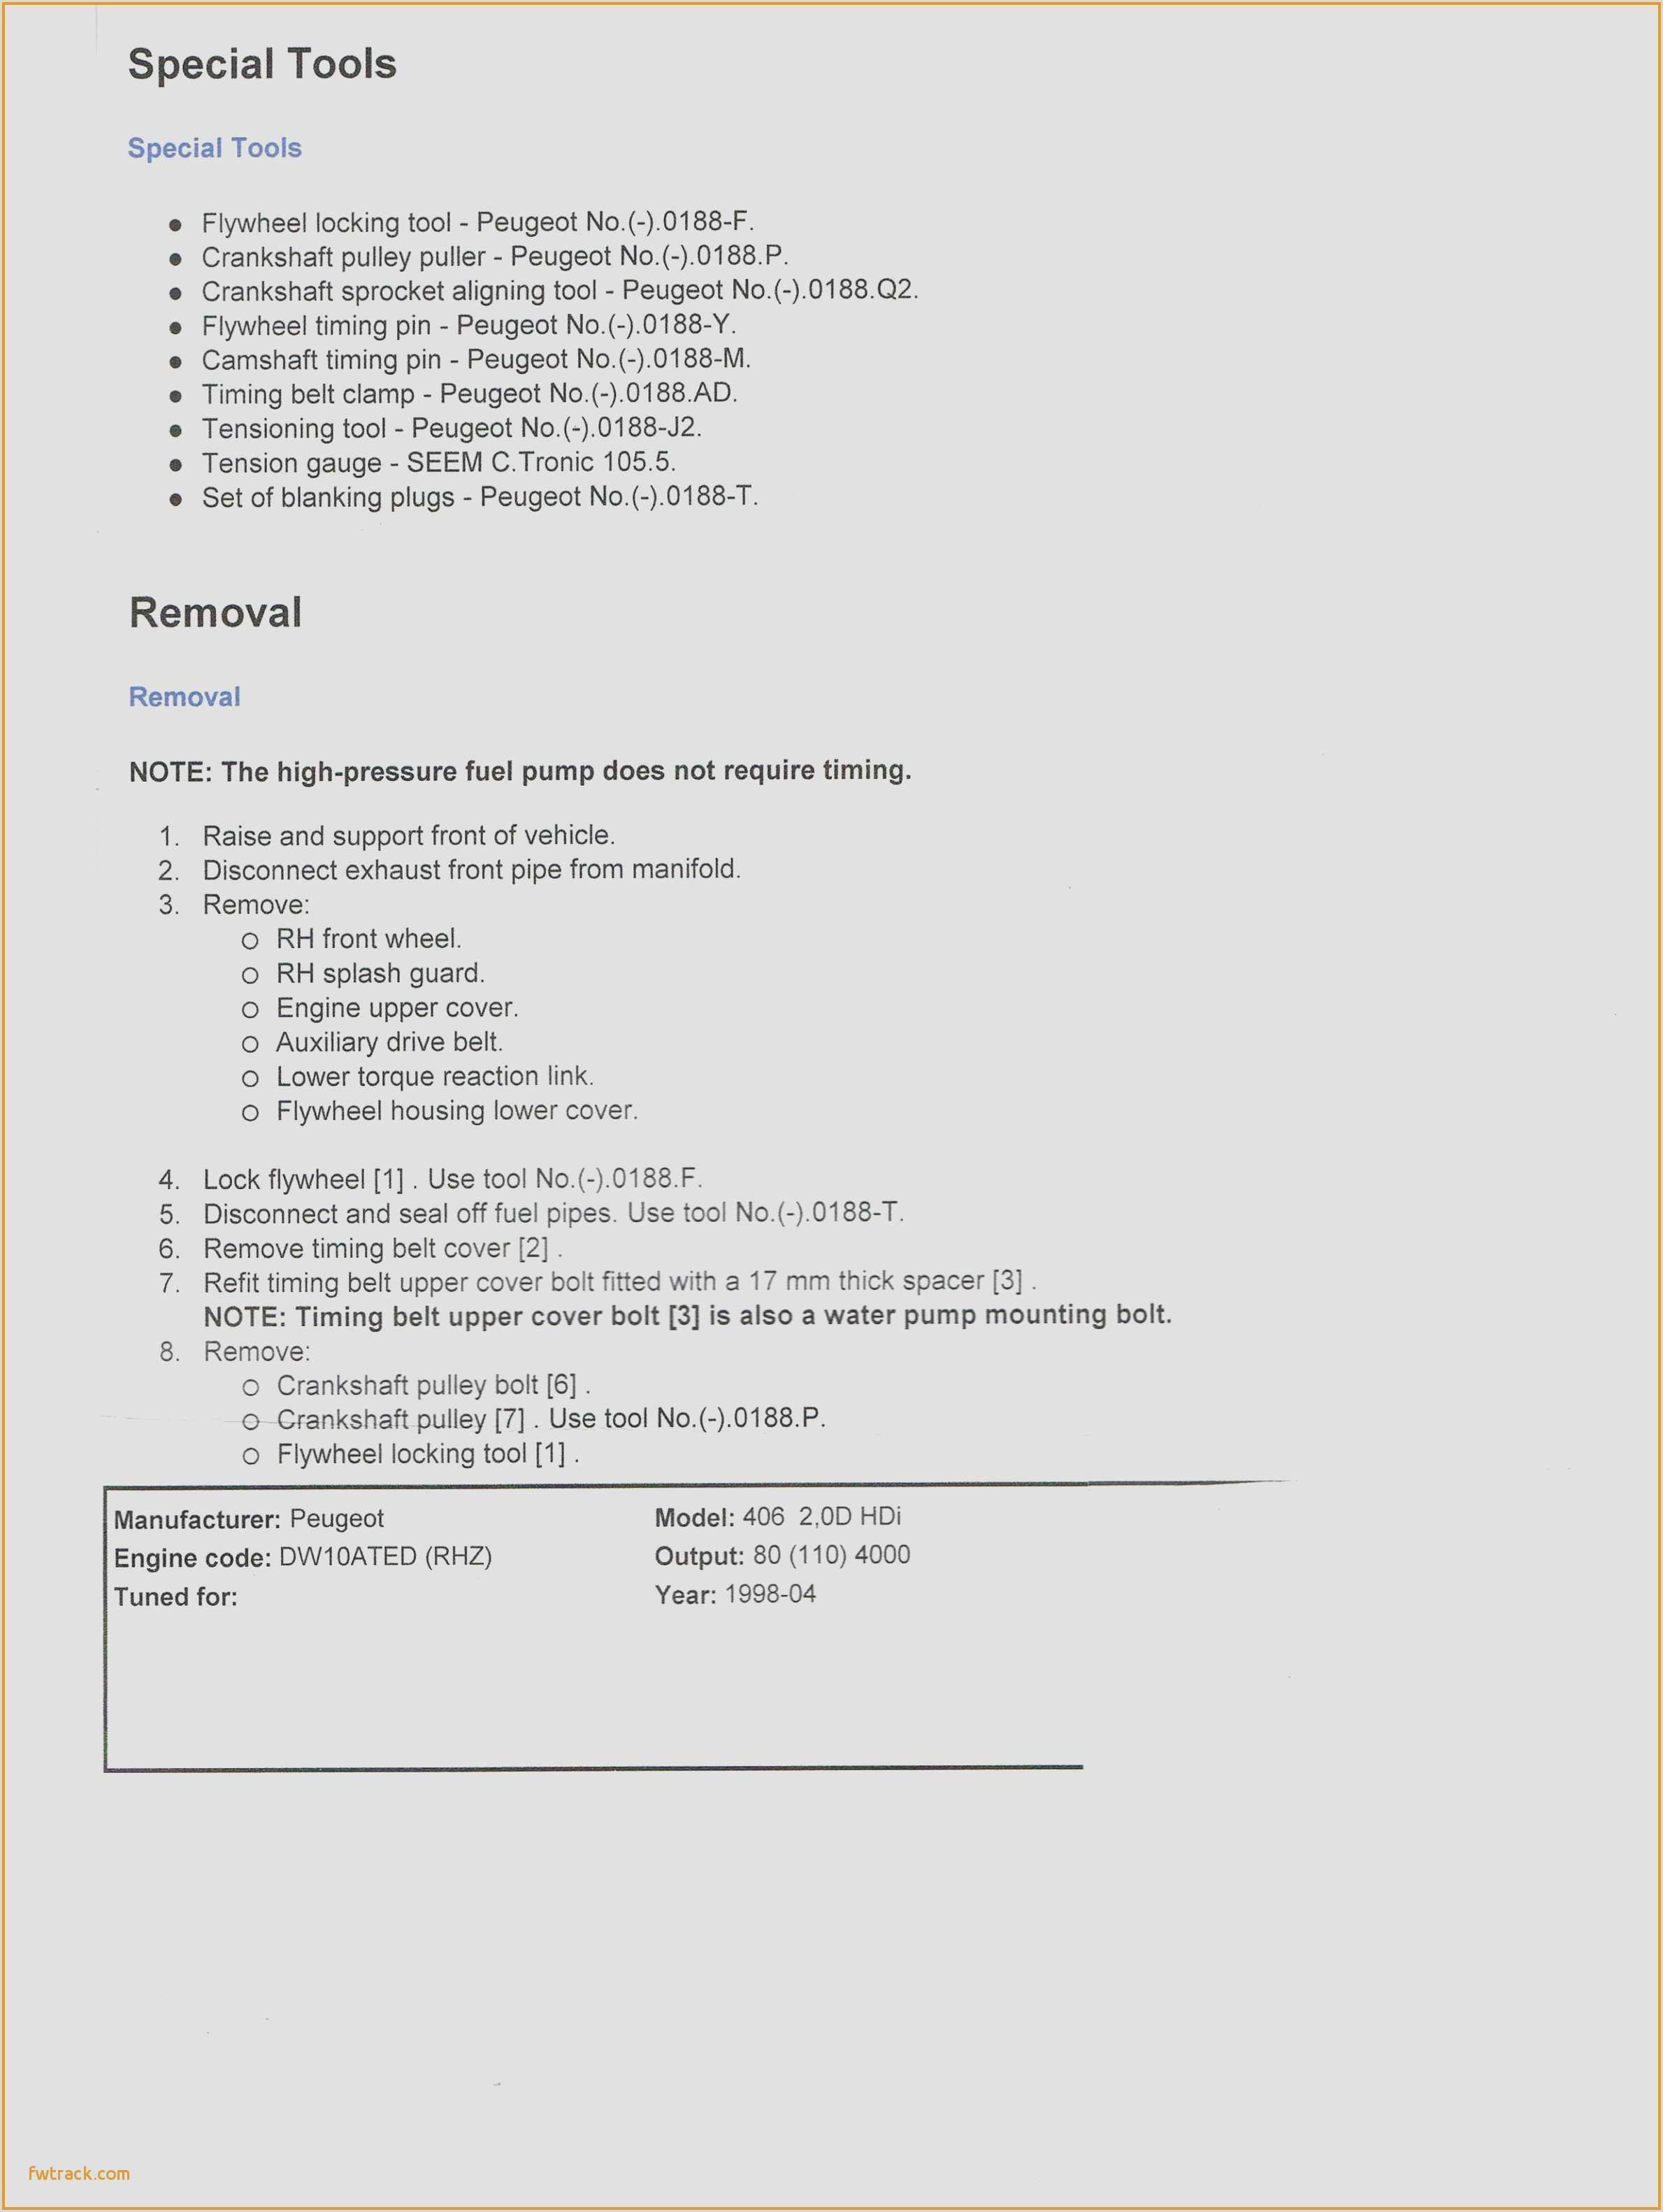 Professional Resume format Doc Free Download Free Modernesume Cv Templates Minimalist Simple Clean Design